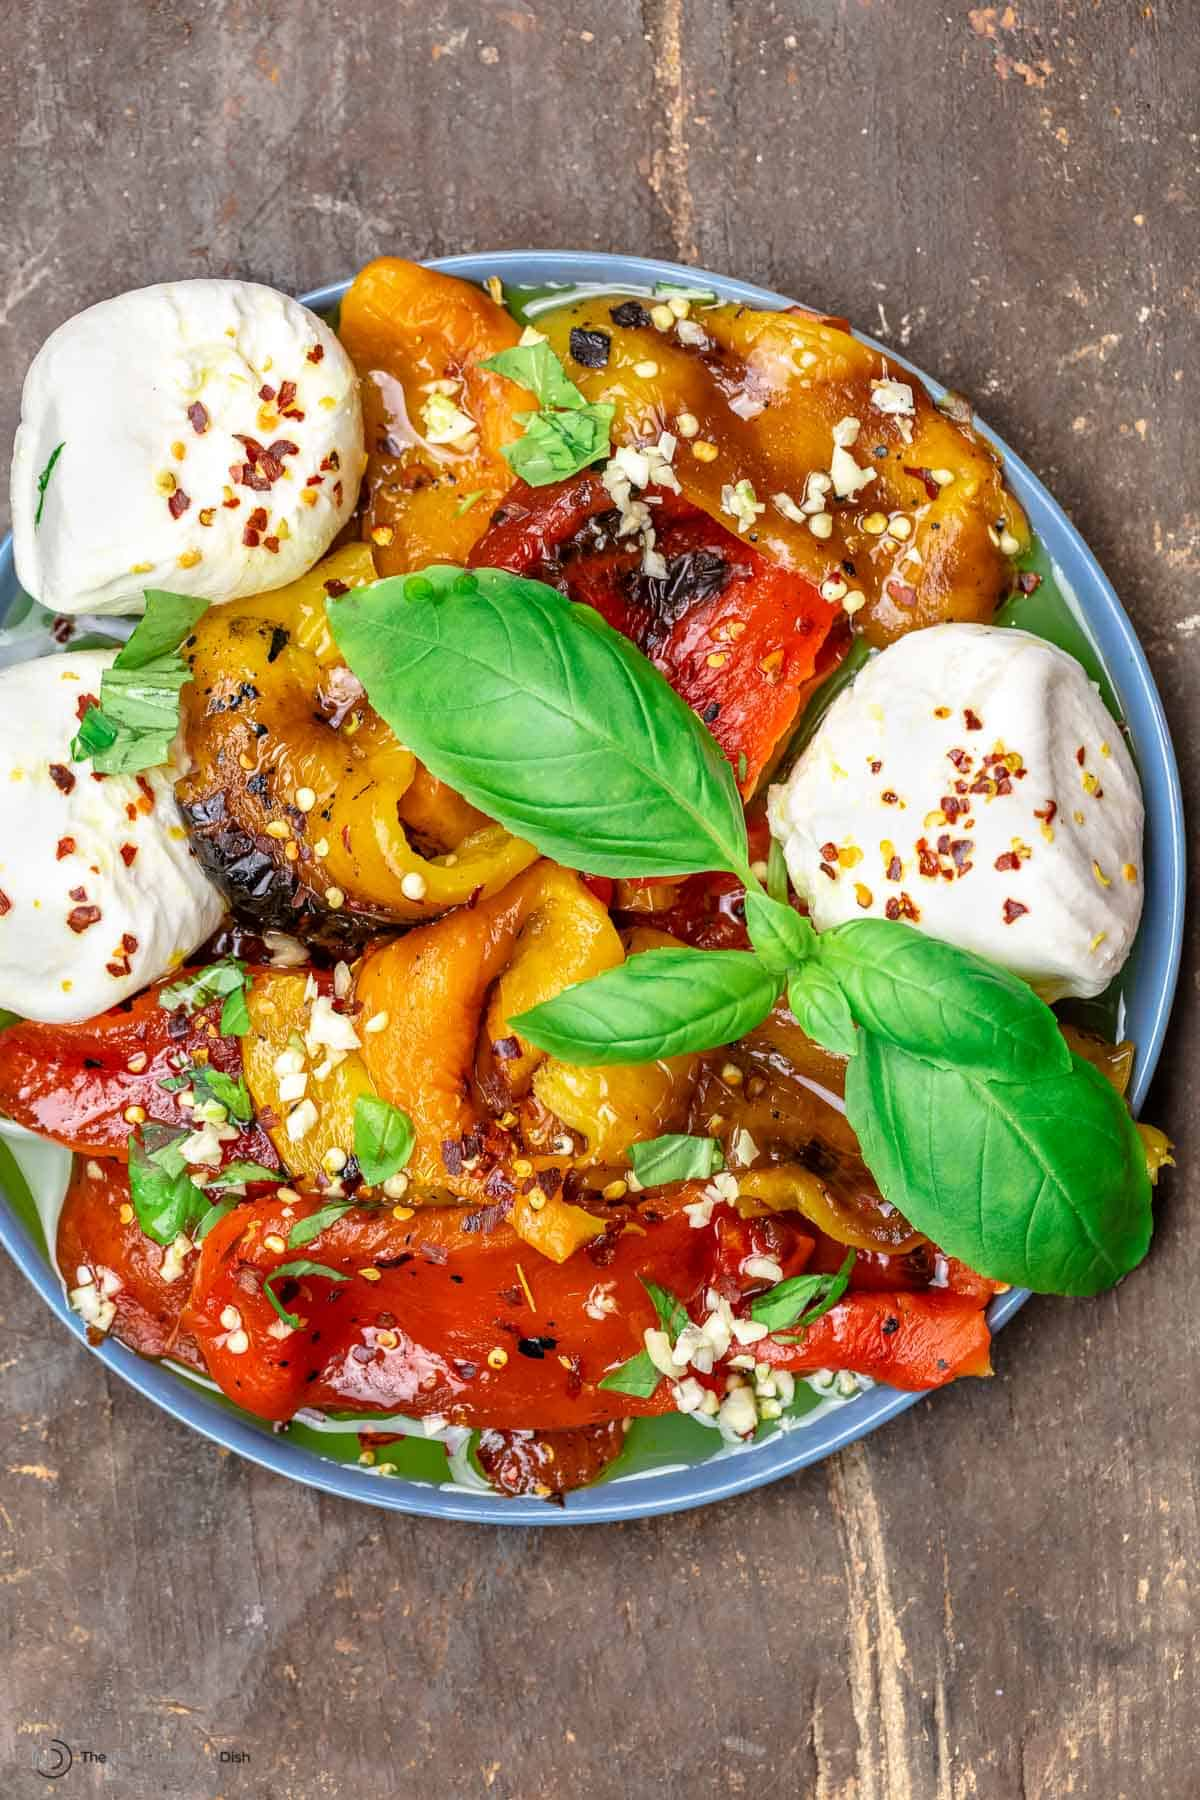 Roasted red peppers and burrata on a blue plate